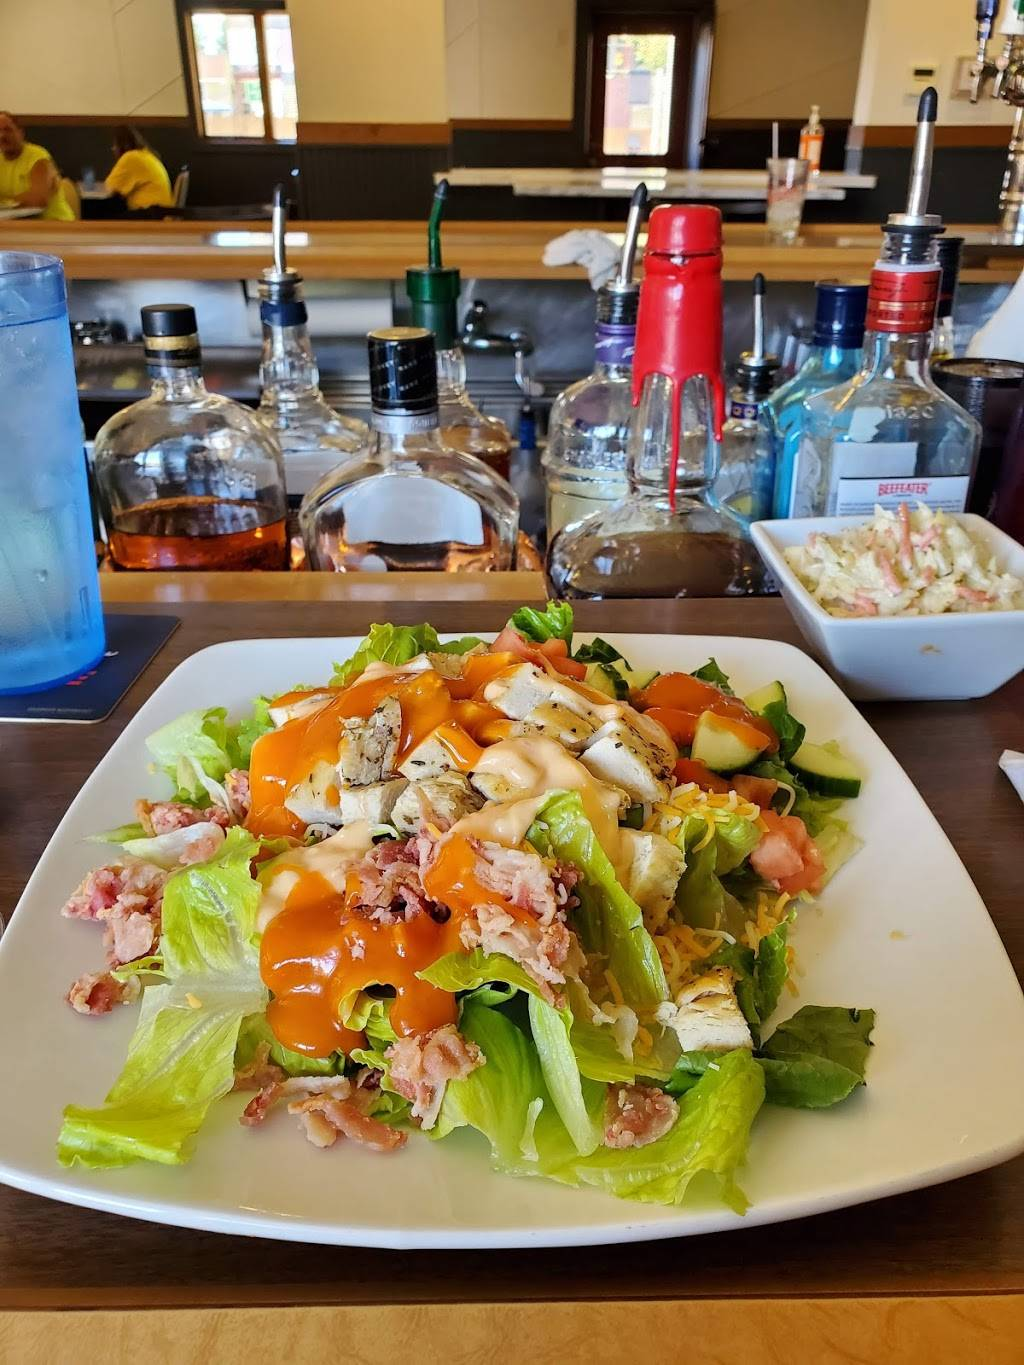 Montags Pub and Grill | restaurant | 1821 Main St, Cross Plains, WI 53528, USA | 6084130333 OR +1 608-413-0333